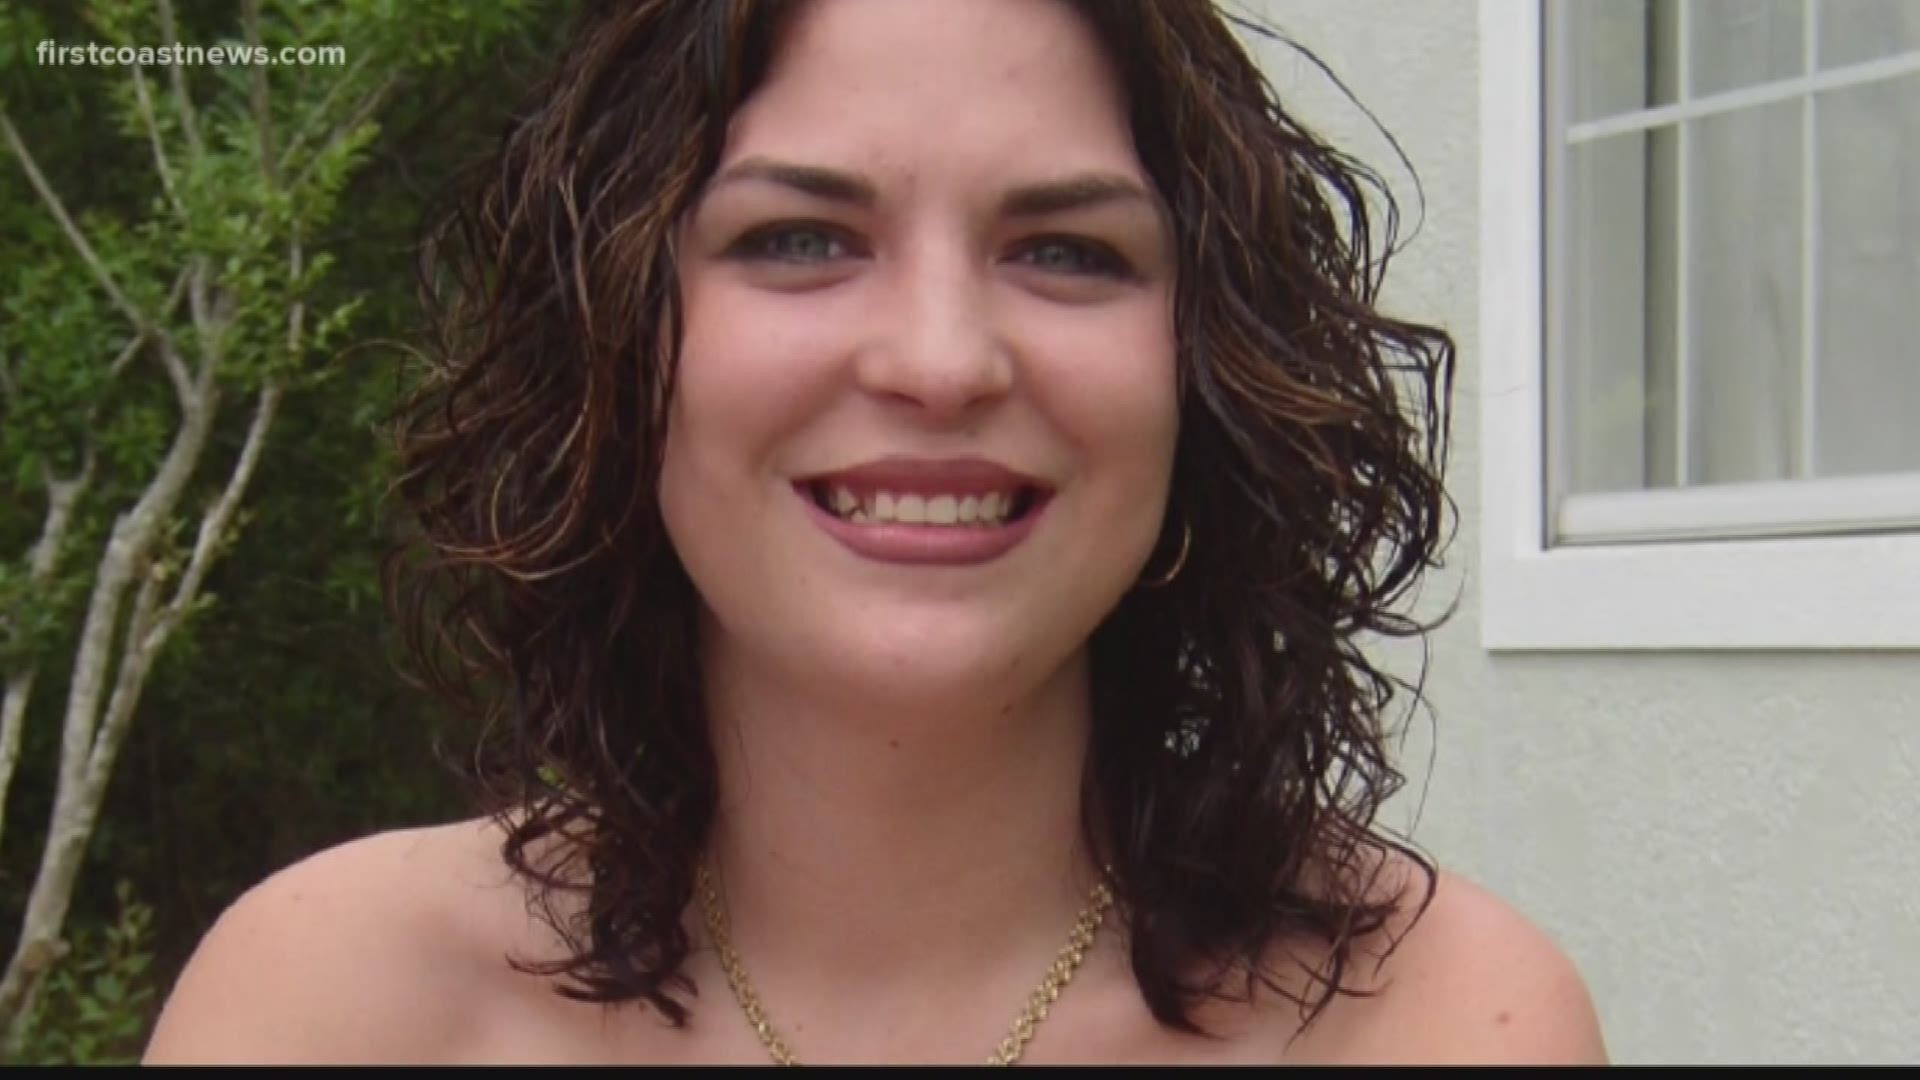 Autopsy Report Reveals Cause Of Death Of Woman Who Died In Clay County Jail Firstcoastnews Com